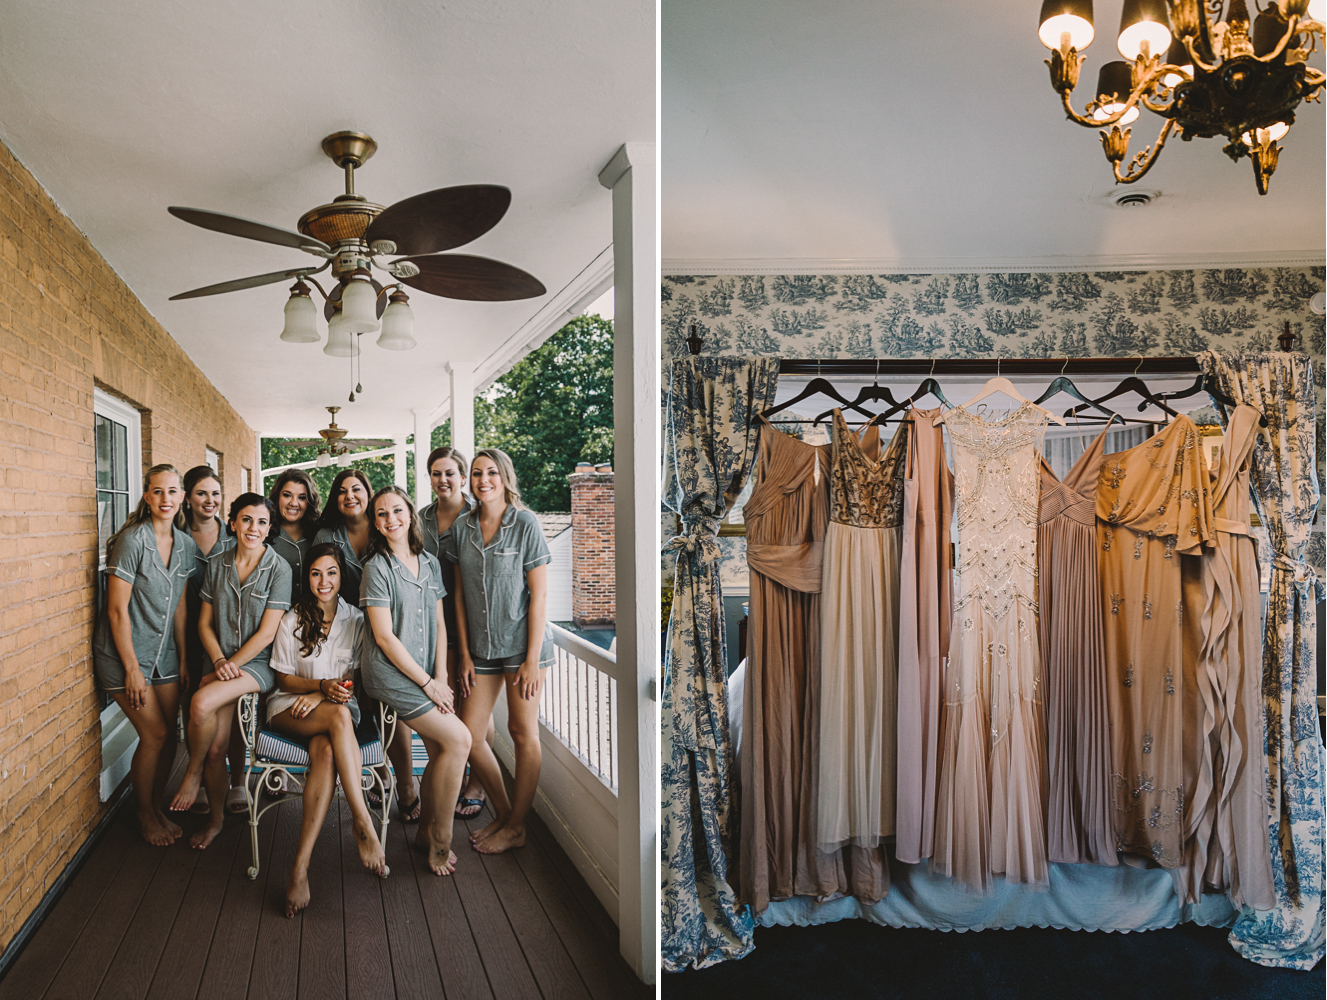 barbara o photography antrim 1844 bridal party blush tones dresses.jpg